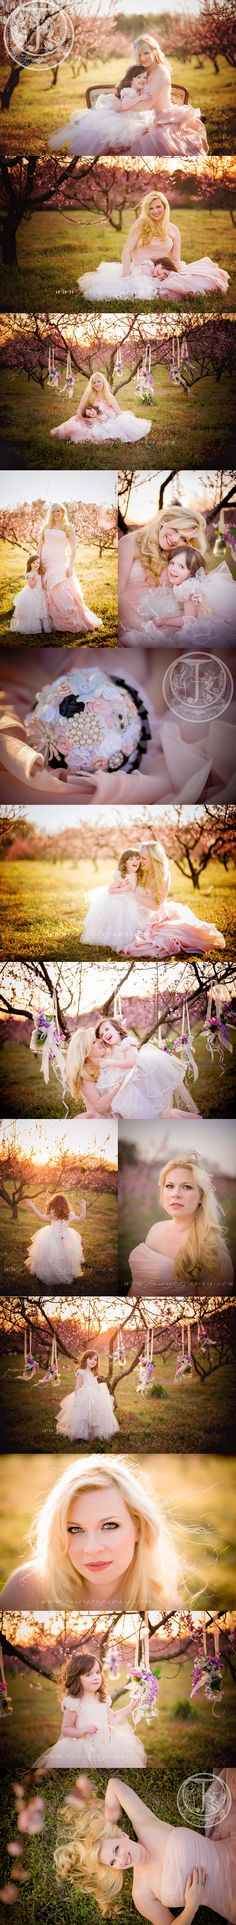 What a fun sweet session idea for mama & little girl! Fairyography » Dream a Little Dream - Fairytale Photography